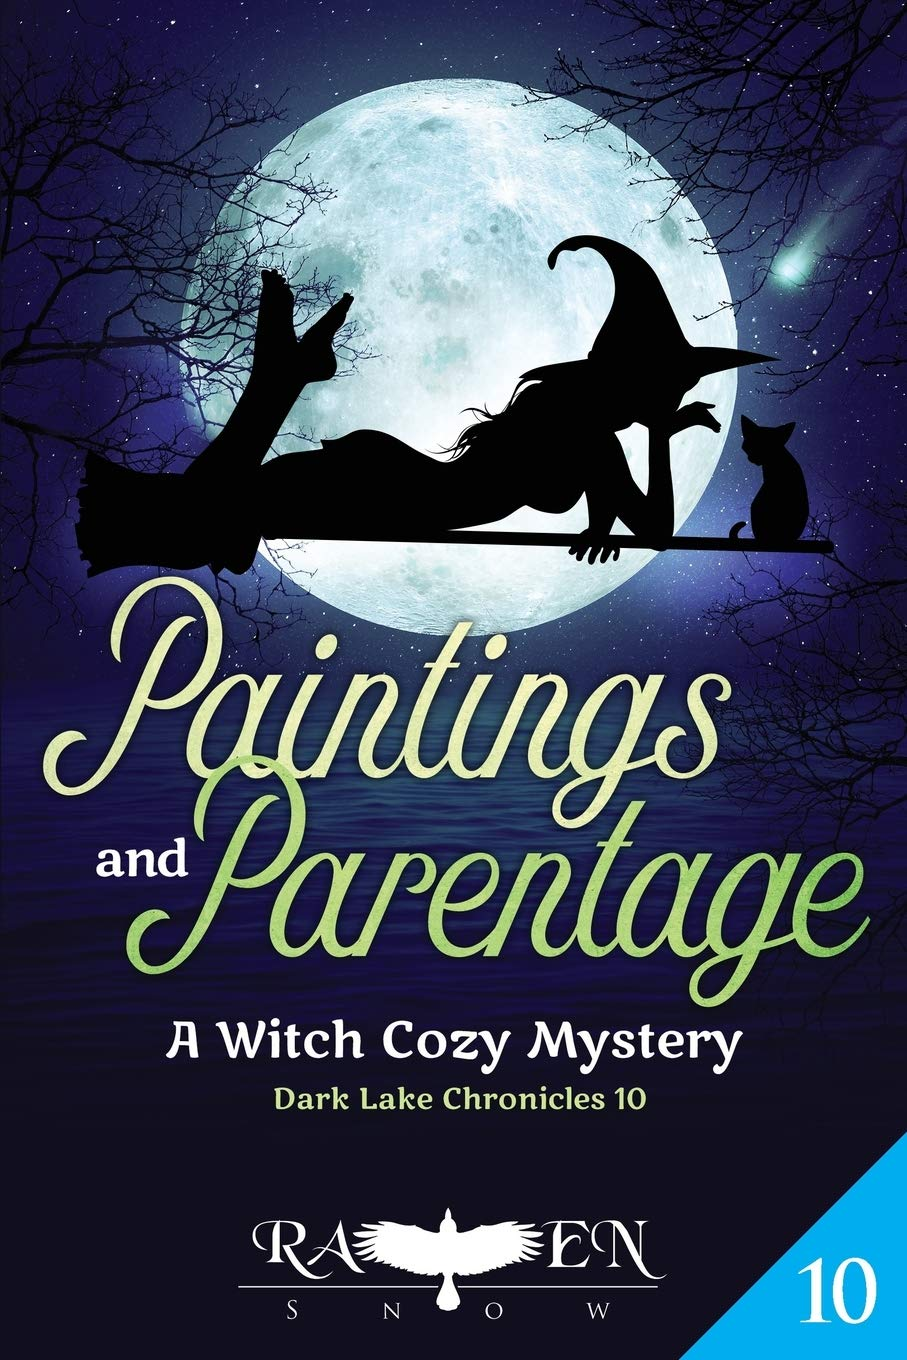 Paintings and Parentage: A Witch Cozy Mystery